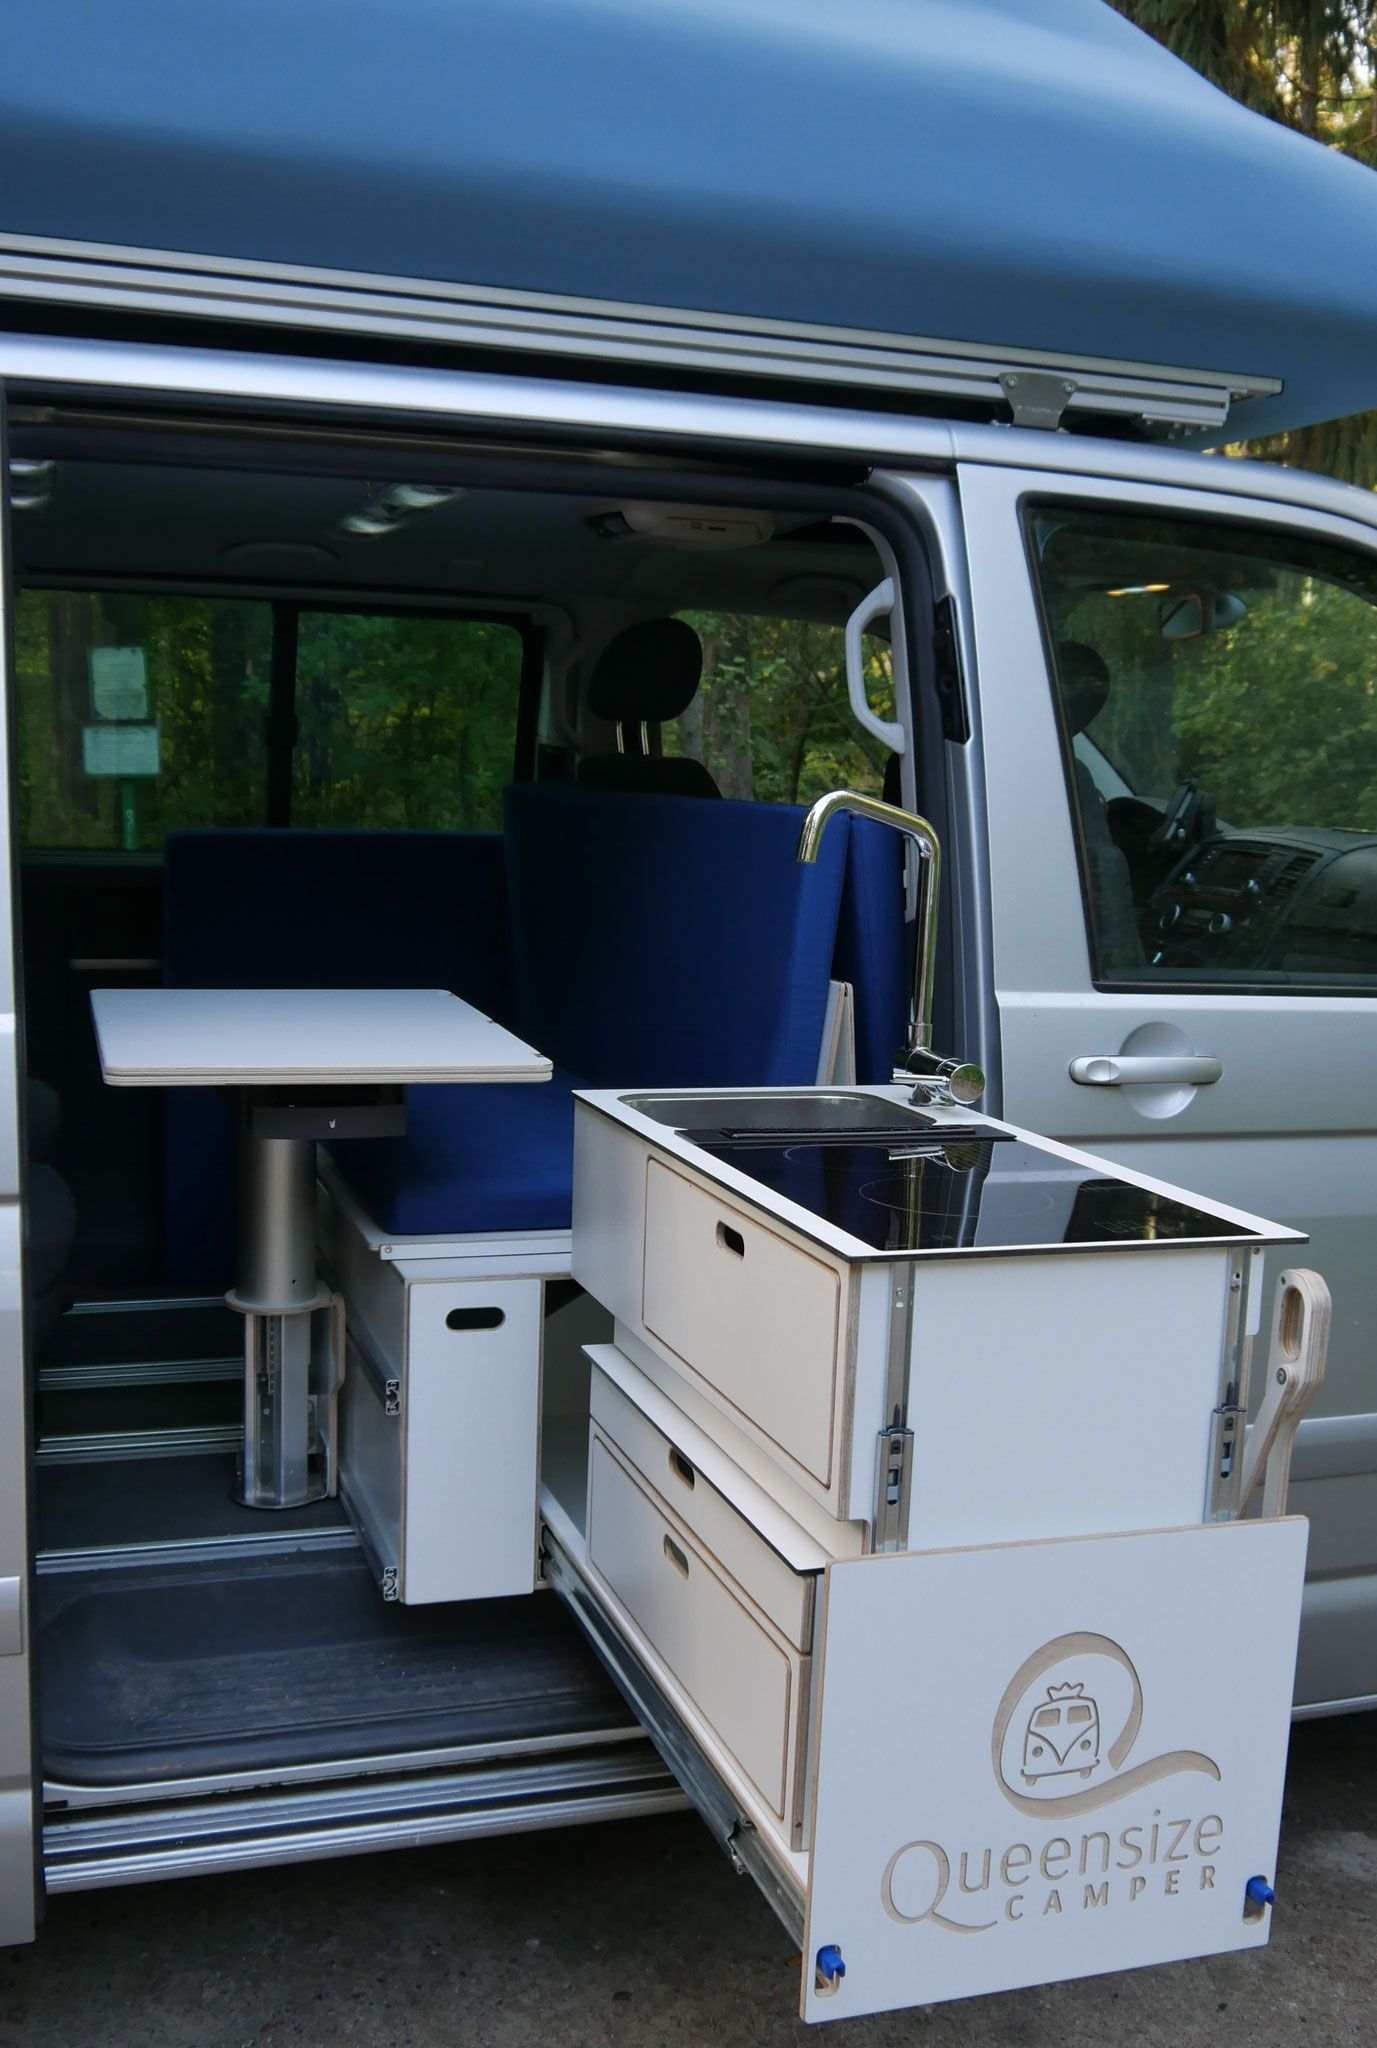 Camper Küchenblock Queensize Camper Kitchen Raised Position Queensize Camper